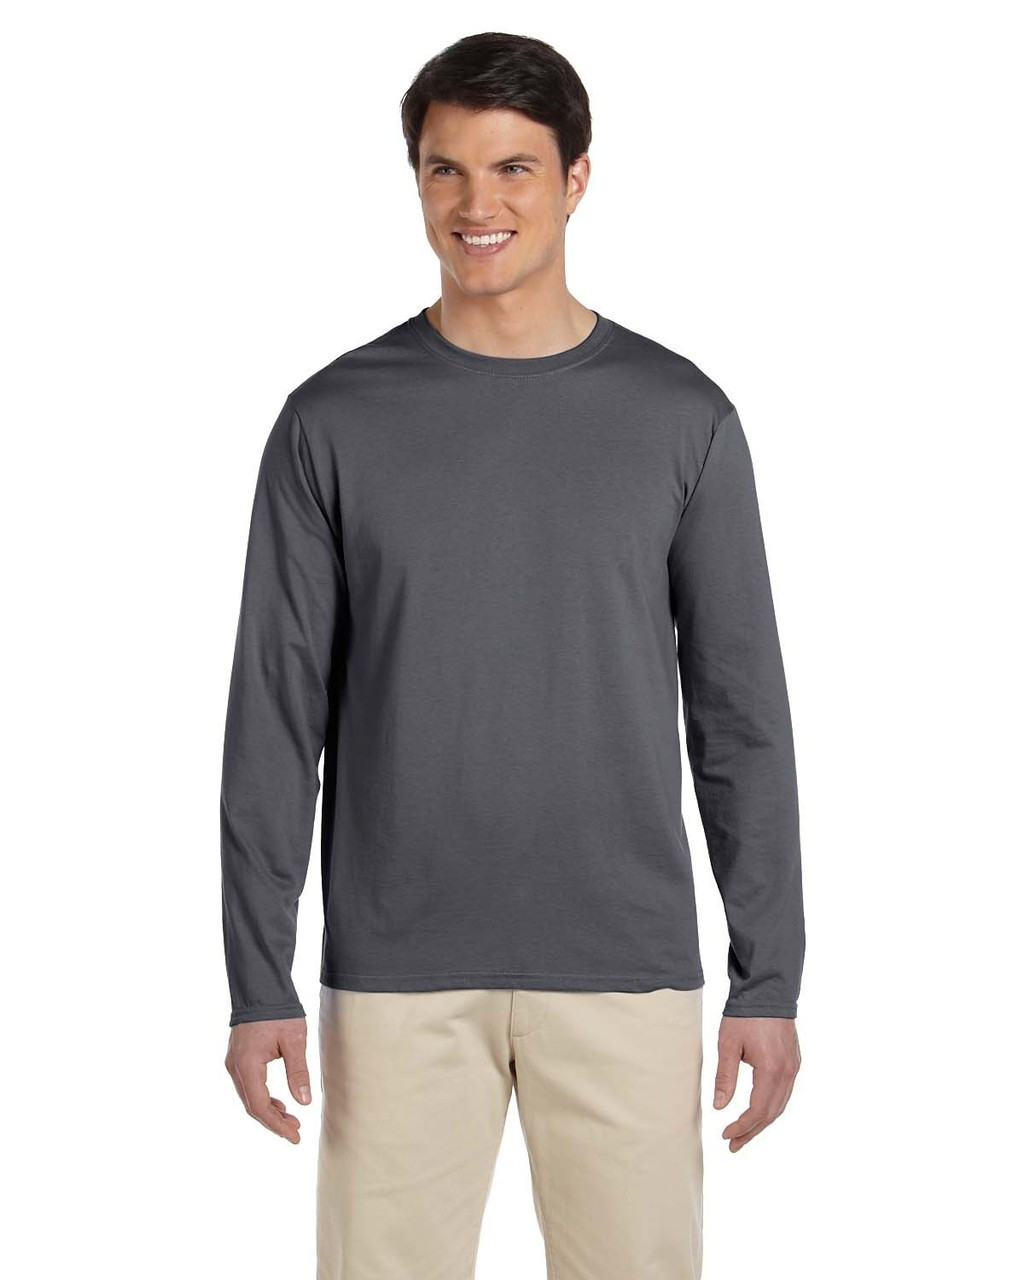 Charcoal - G644 SoftStyle Long Sleeve T-Shirt | Blankclothing.ca